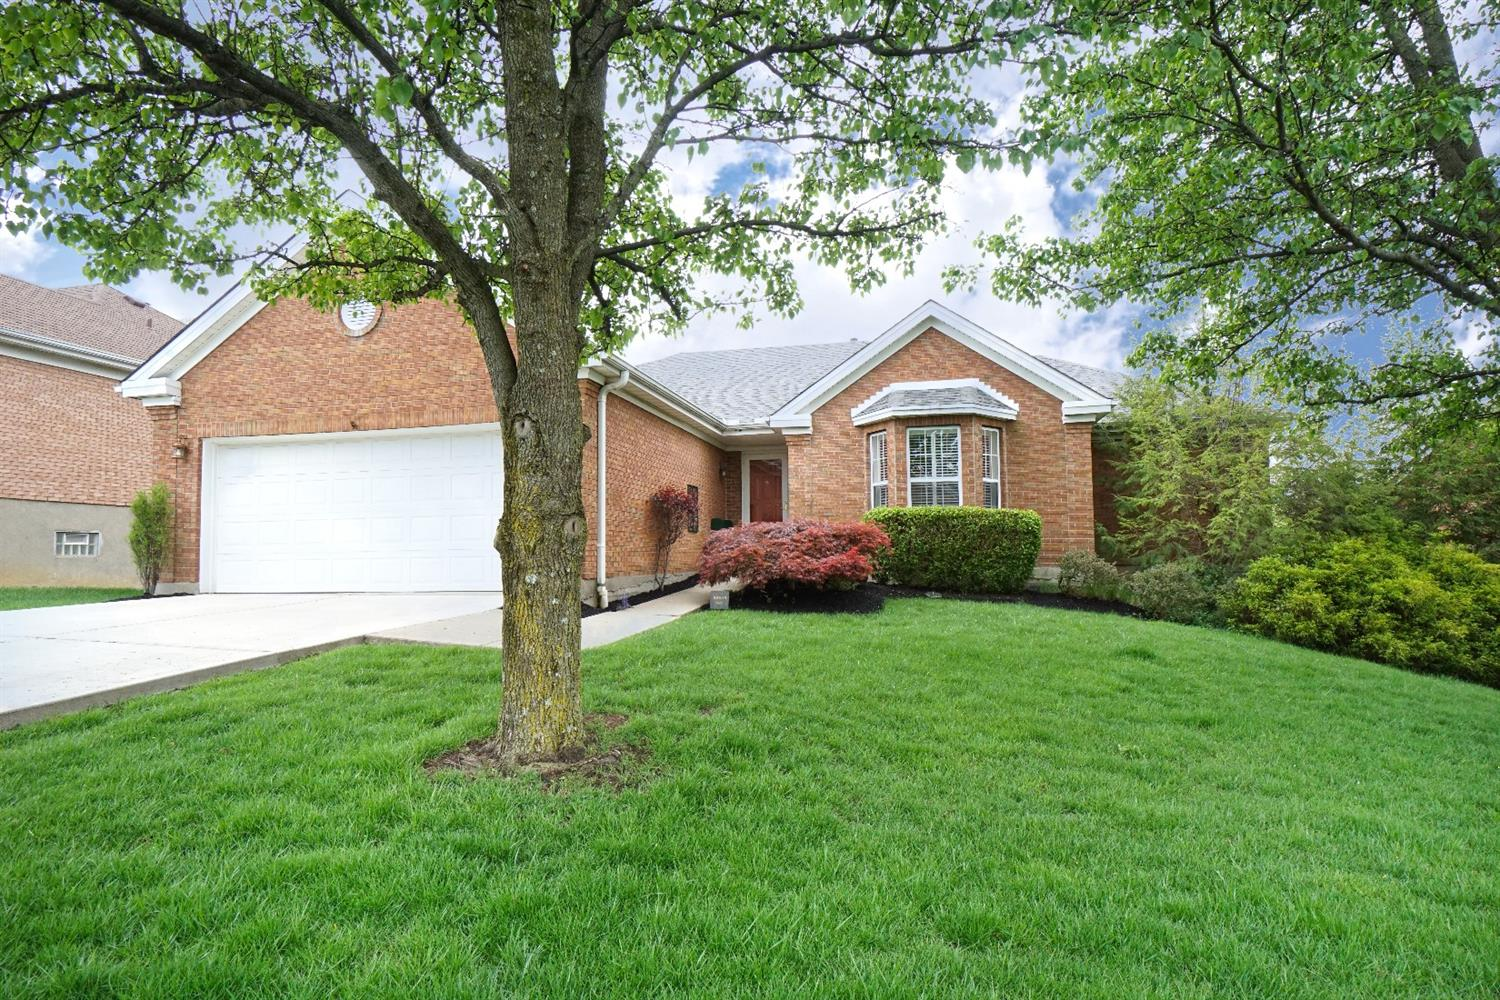 2507 Proudhon Wy Mt. Airy, OH